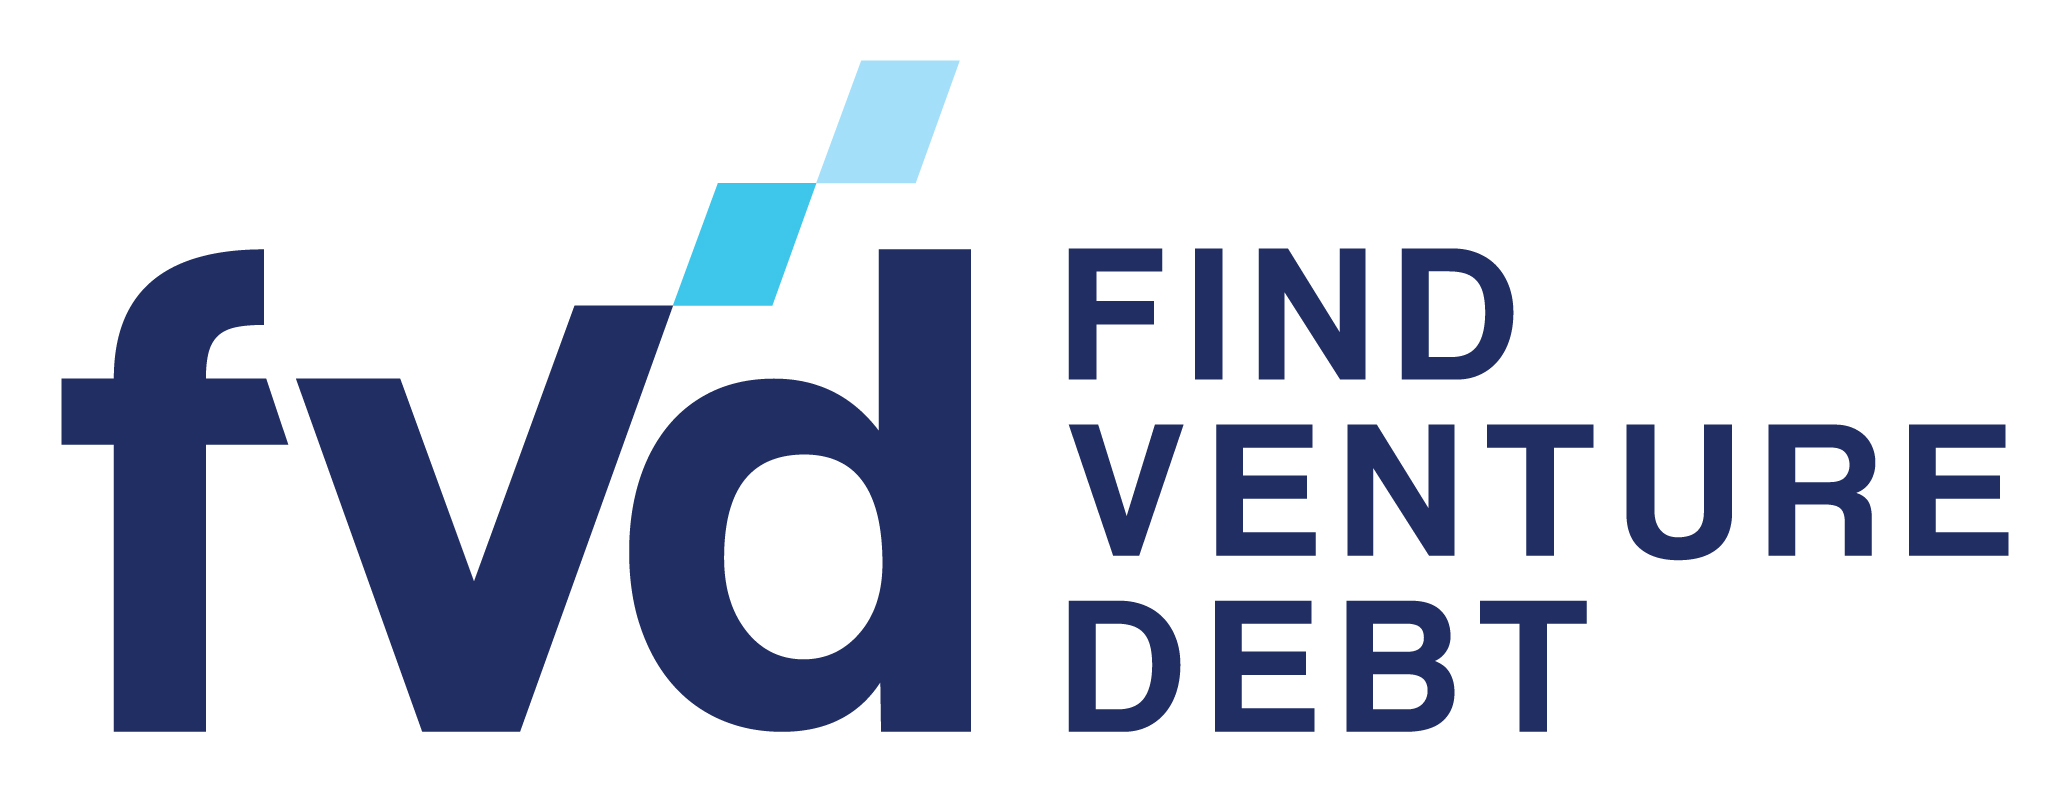 Find Venture Debt Logo